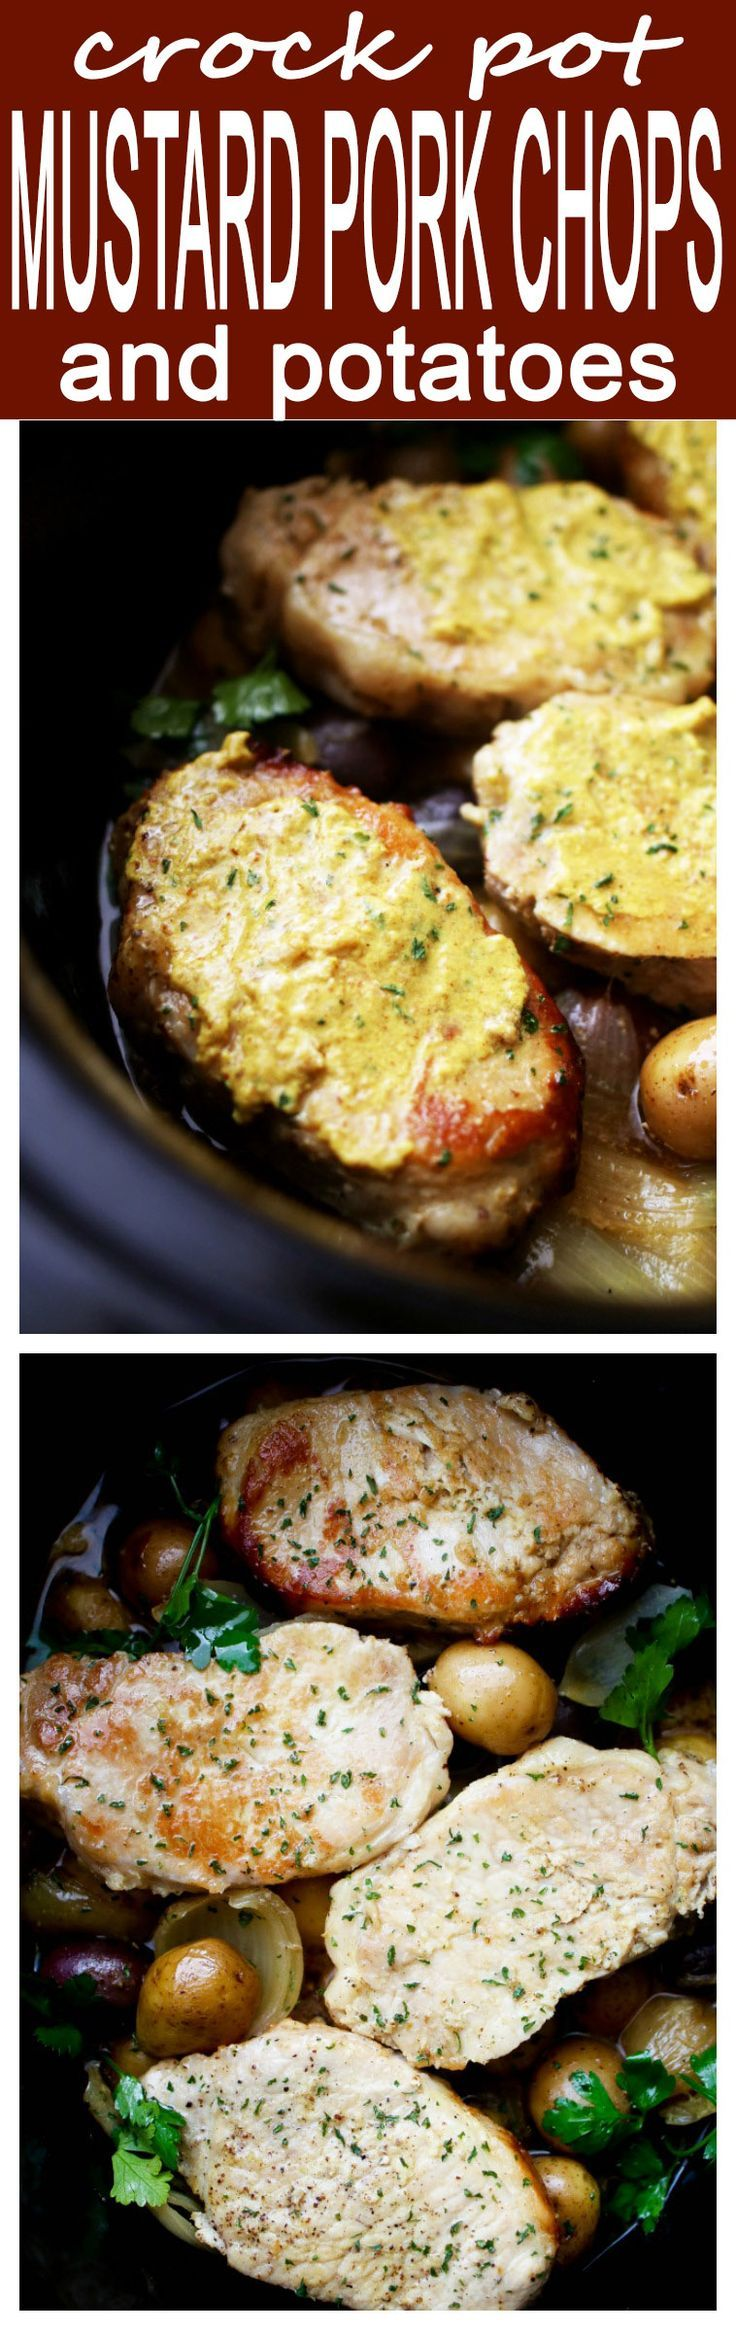 Crock Pot Mustard Pork Chops and Potatoes - Easy crock pot dinner with juicy pork chops and tender potatoes prepared in a delicious mustard sauce.